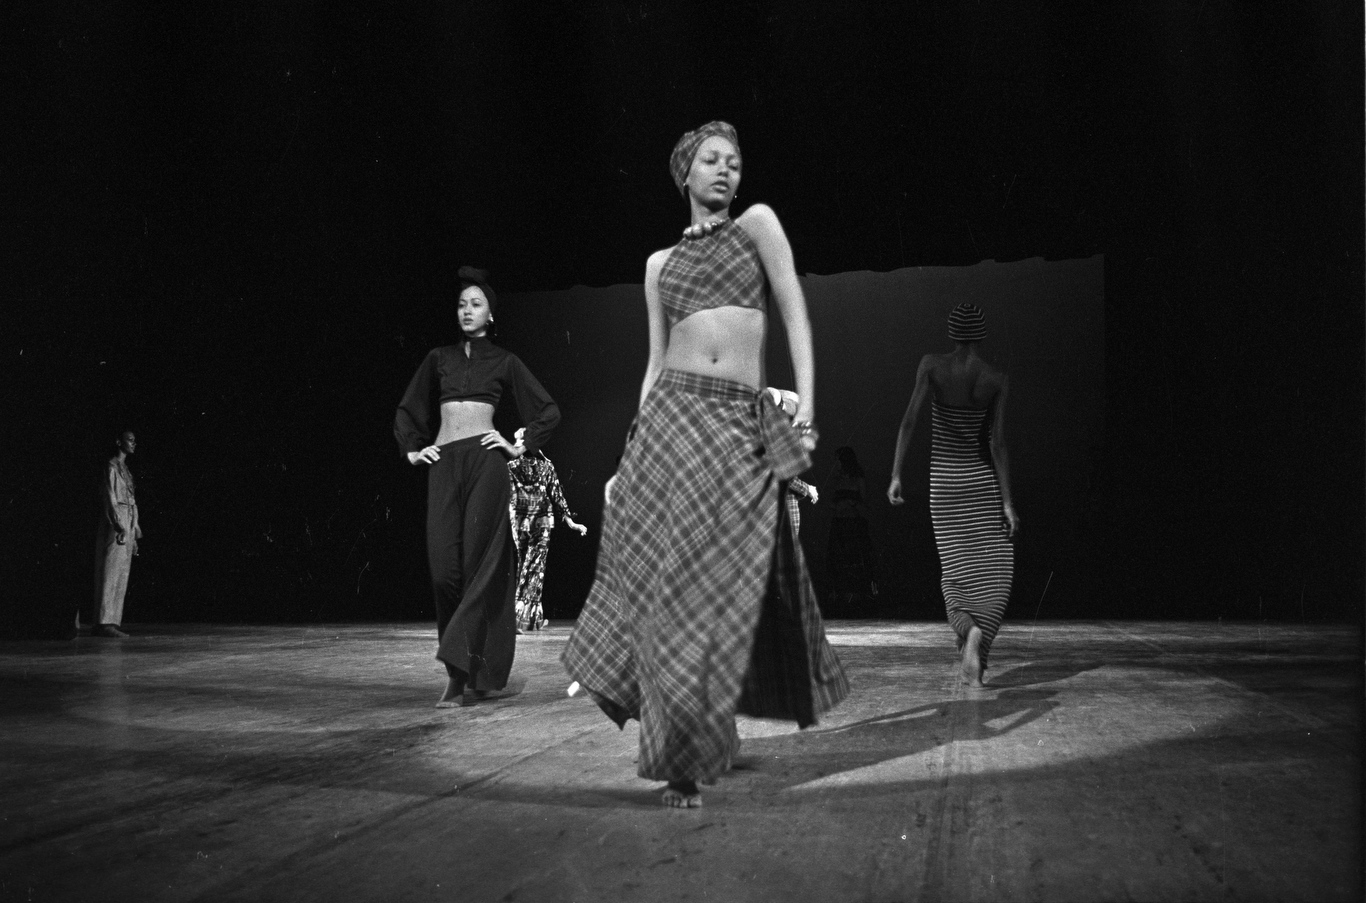 Models dressed in midriff-bearing tops and oversized bottoms of solids, stripes and plaids worn with headresses during the fashion show to benefit the restoration of the Chateau of Versailles, five American designers matching talents with five French couturiers at the Versailles Palace on November 28, 1973 in Versailles, France...Article title:'One night and pouf! It's gone!Battle of Versailles, Versailles